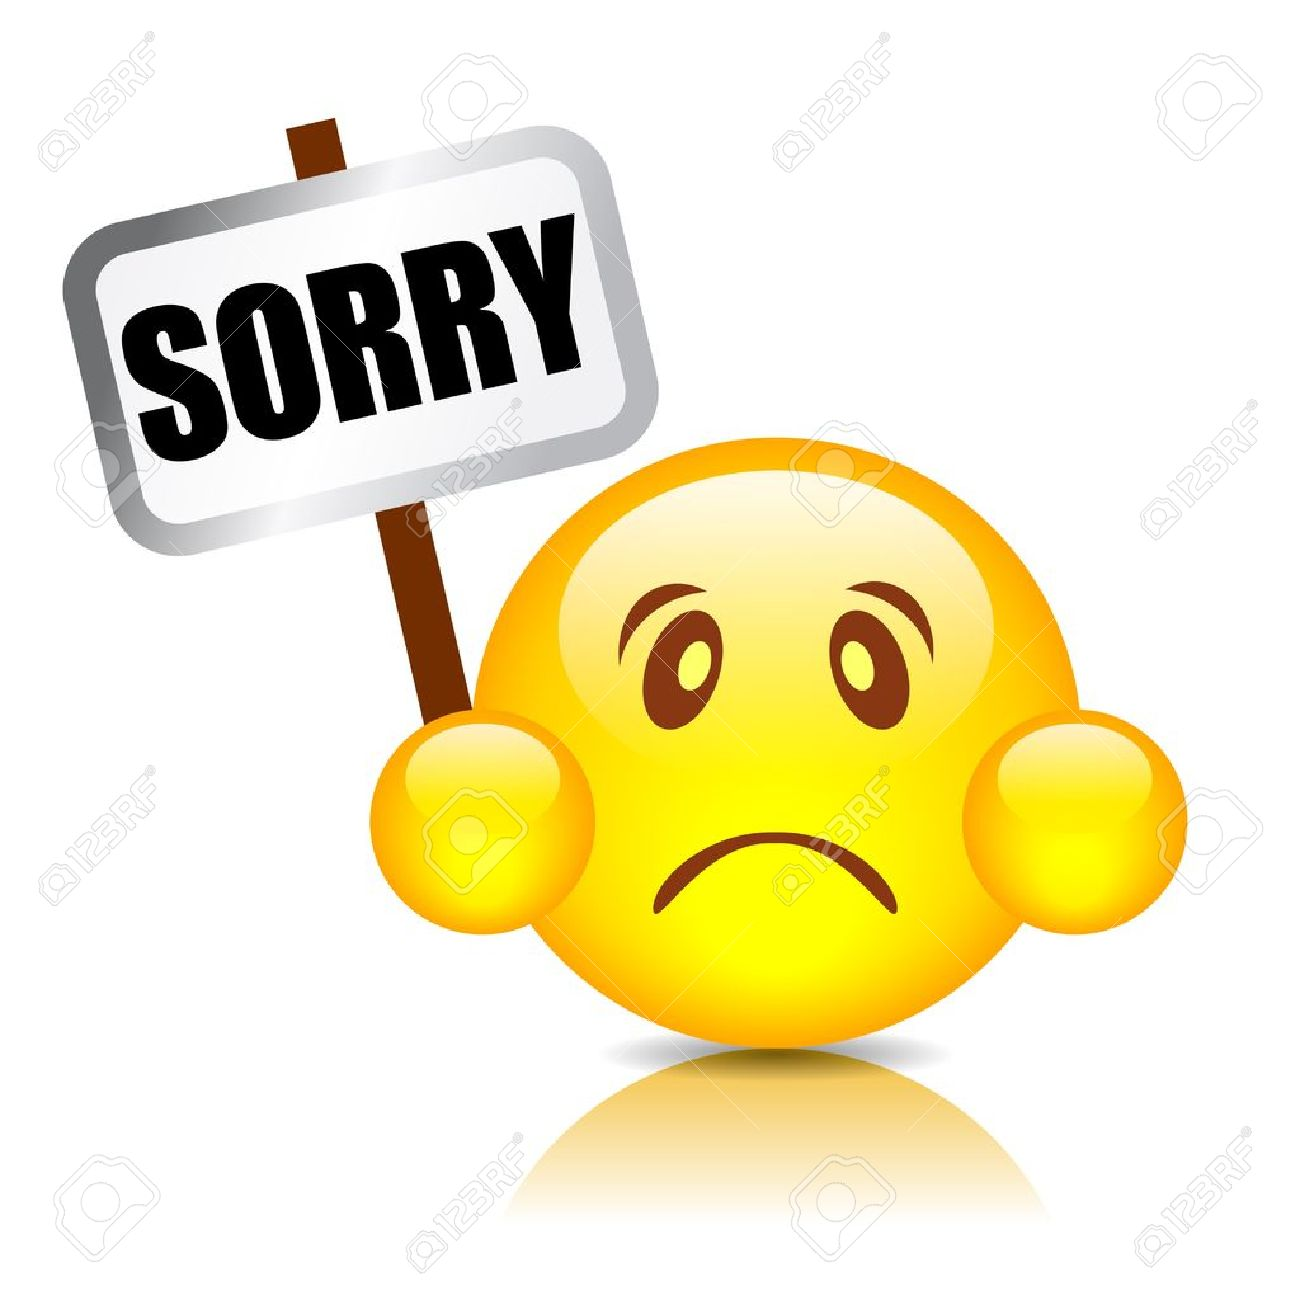 Sorry smiley illustration Stock Vector - 15714154